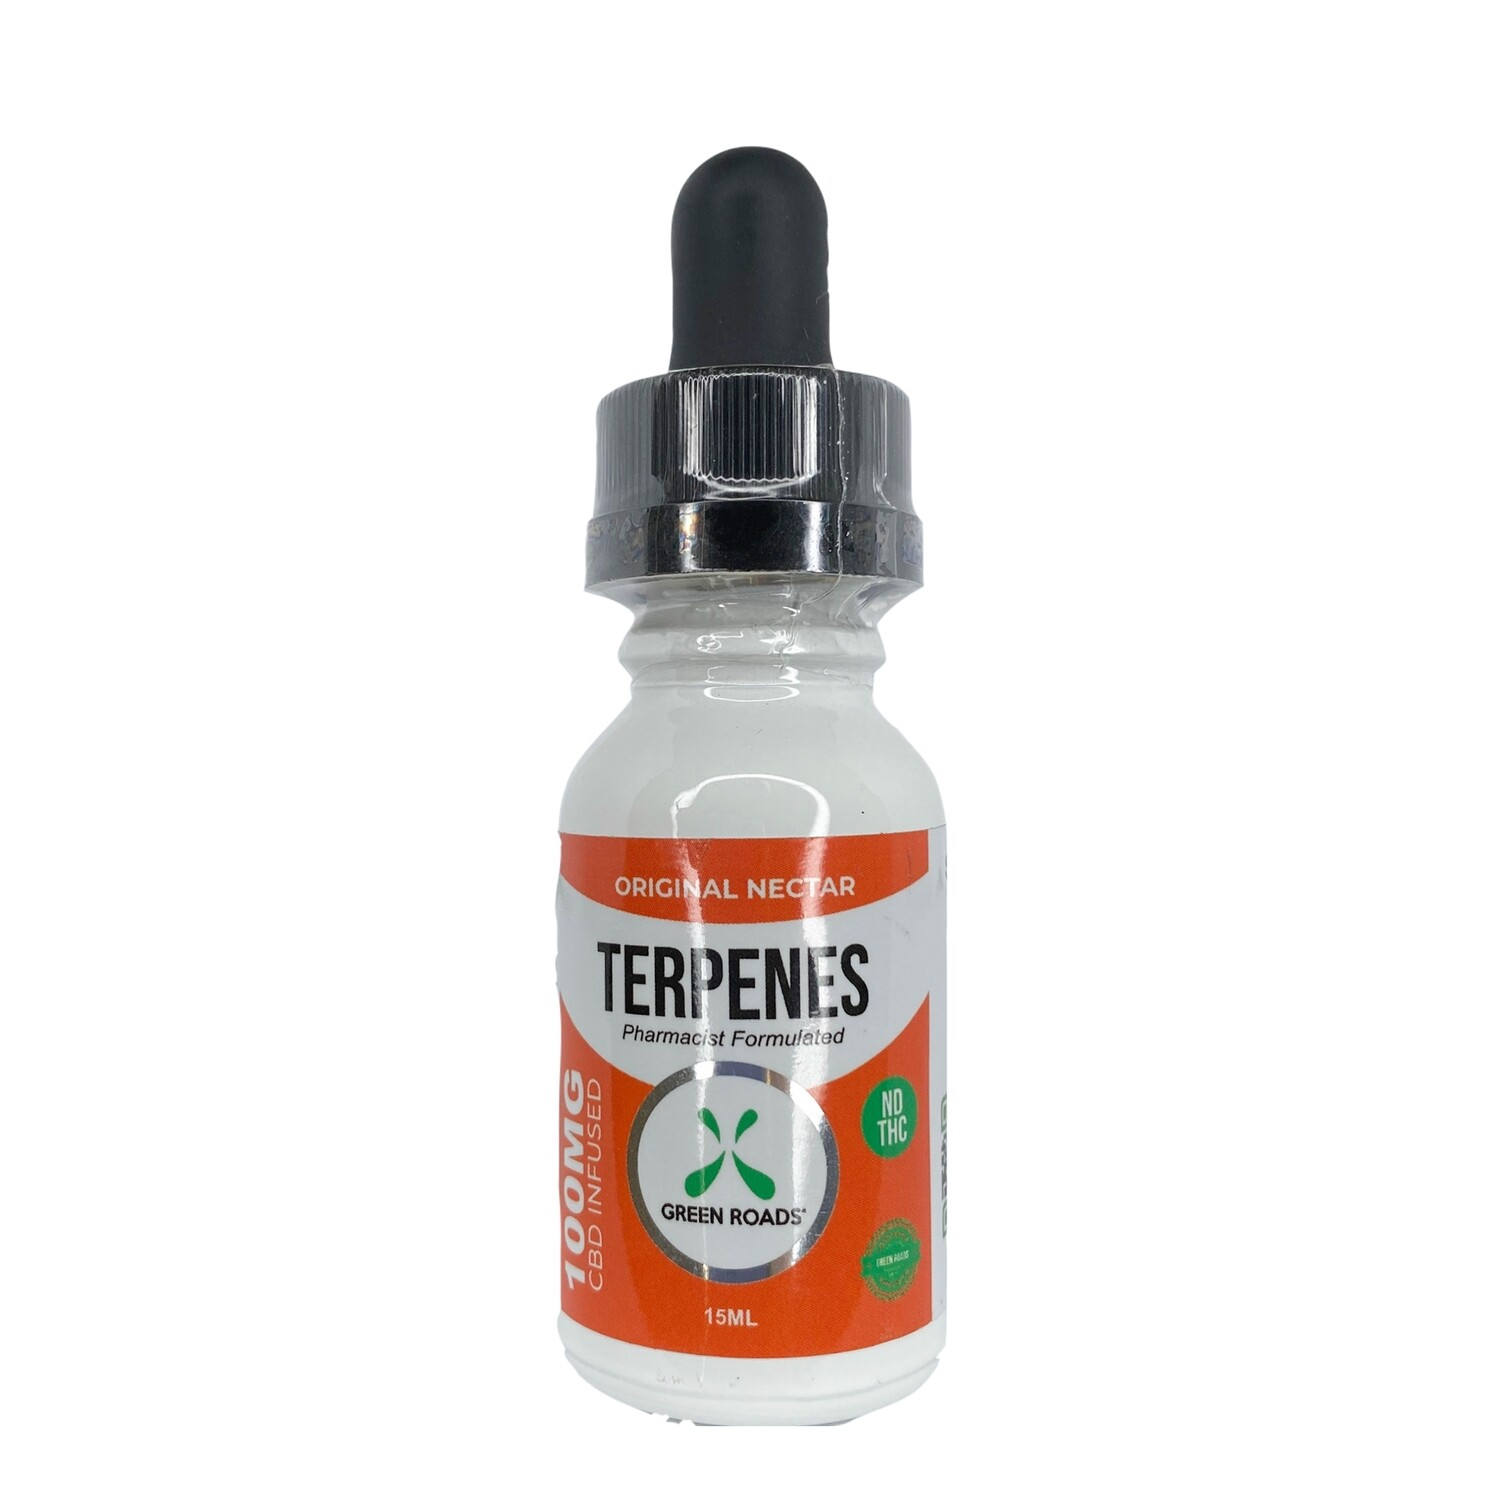 GREEN ROADS original nectar terpenes - 100mg